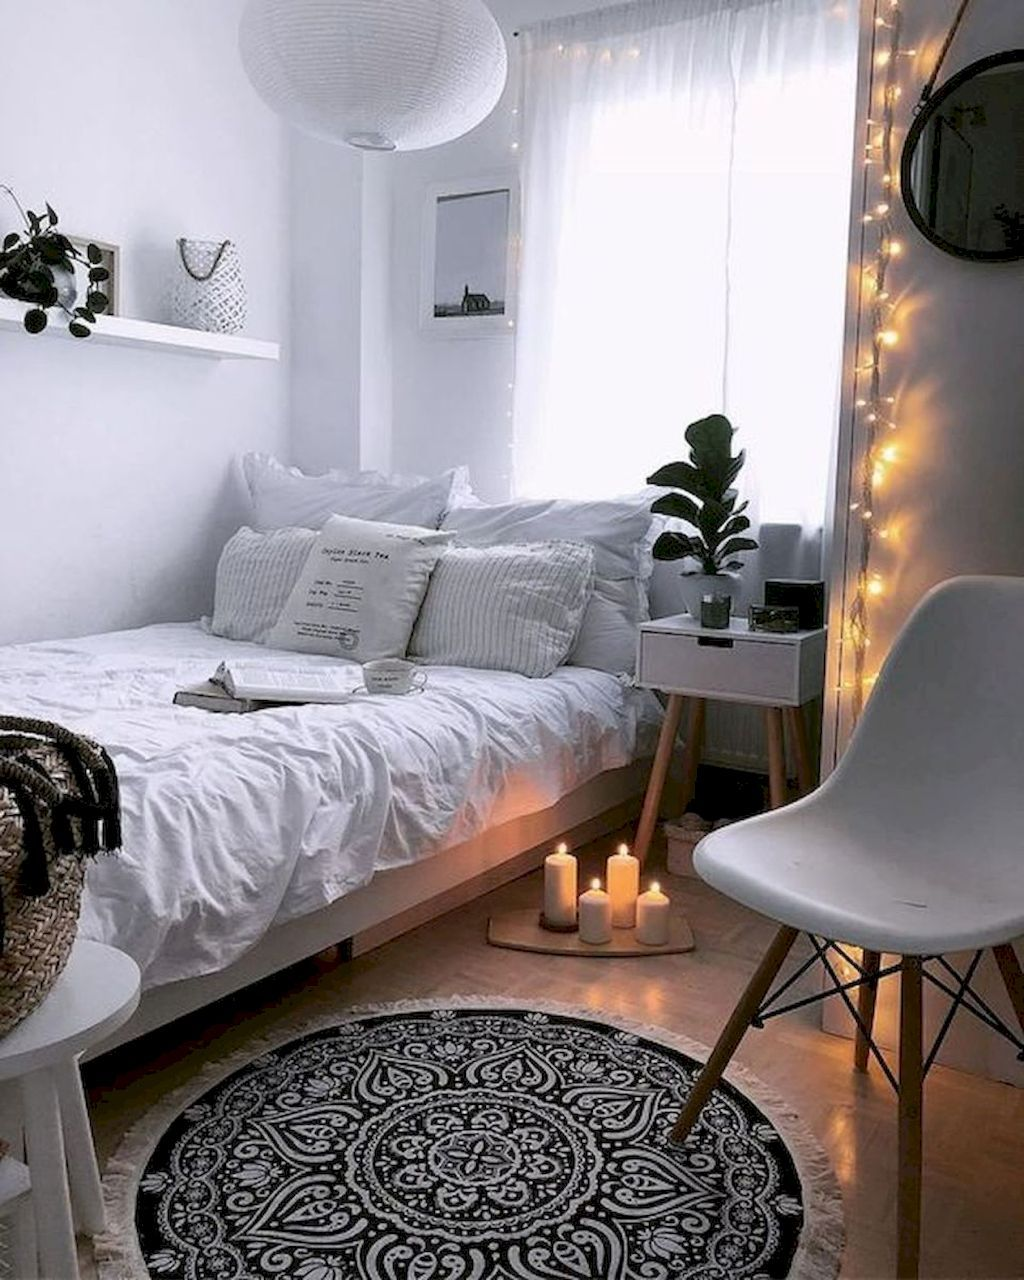 Photo of 3 Steps to Decorating Your Narrow Bedroom with a Minimalist Concept